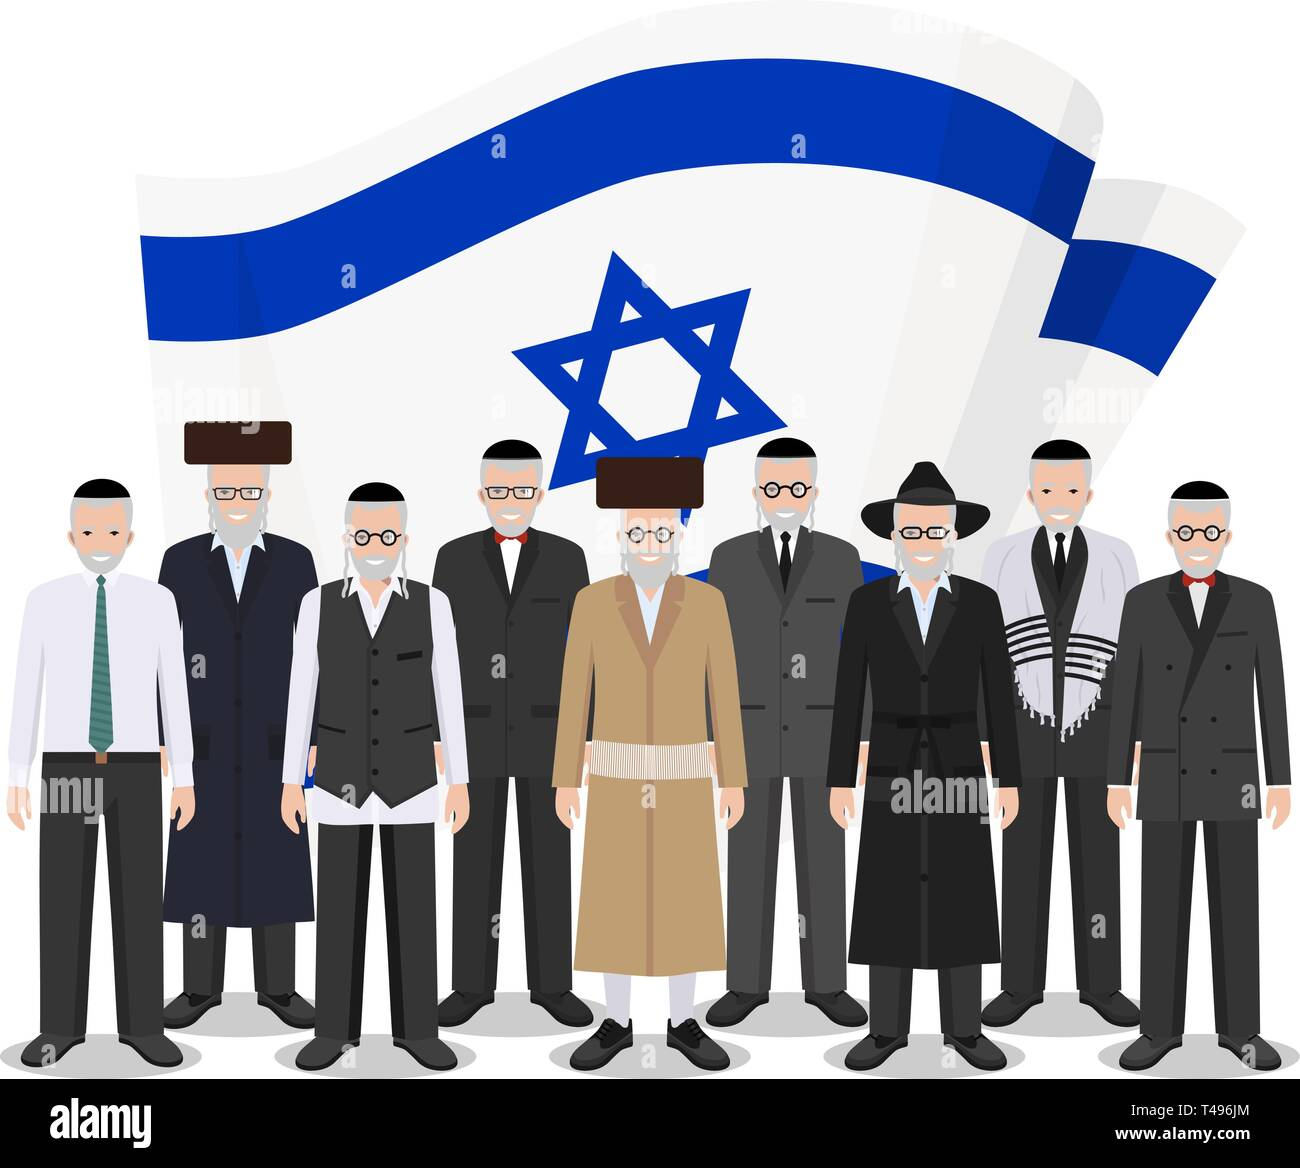 Social concept. Group senior jewish people standing together in different traditional national clothes on background with Israel flag in flat style - Stock Vector